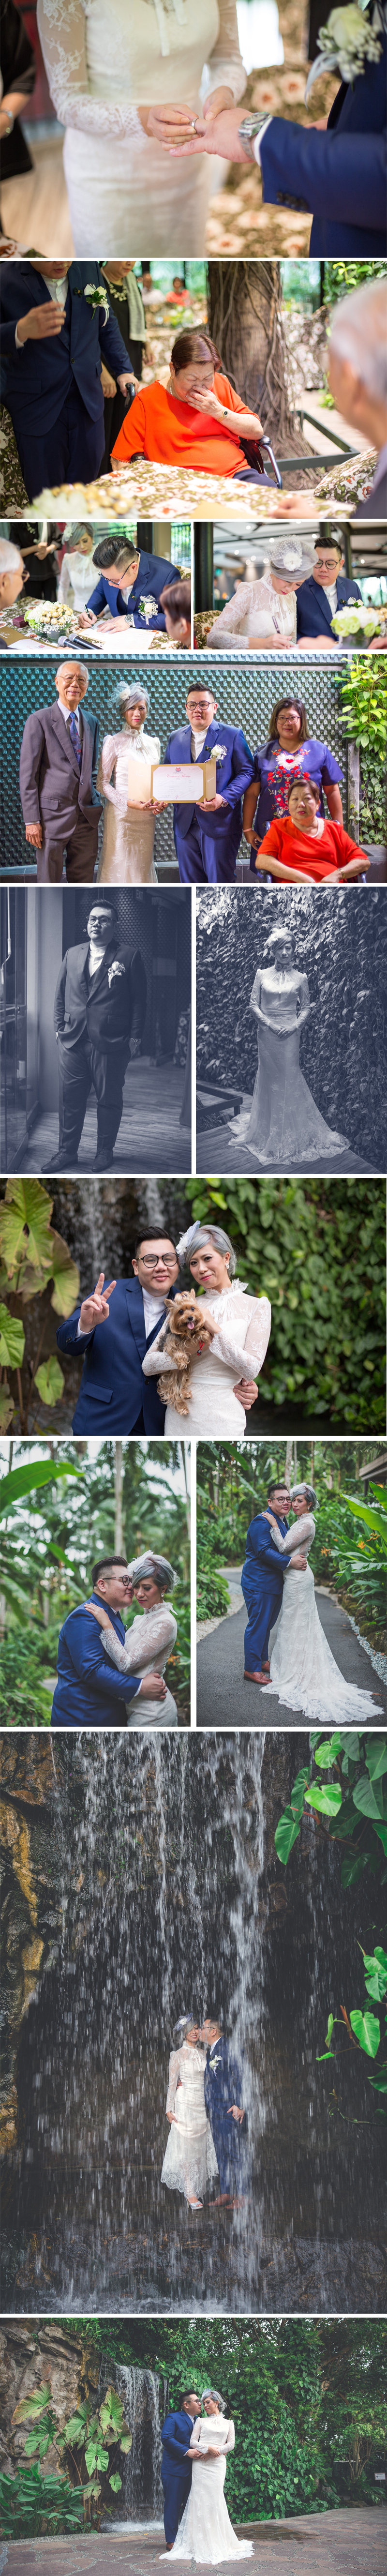 Singapore Wedding and Commercial Photography and Videography - Chris Ong Studio_files/justinchai_wedding_day_chrisongstudio_photography02.jpg